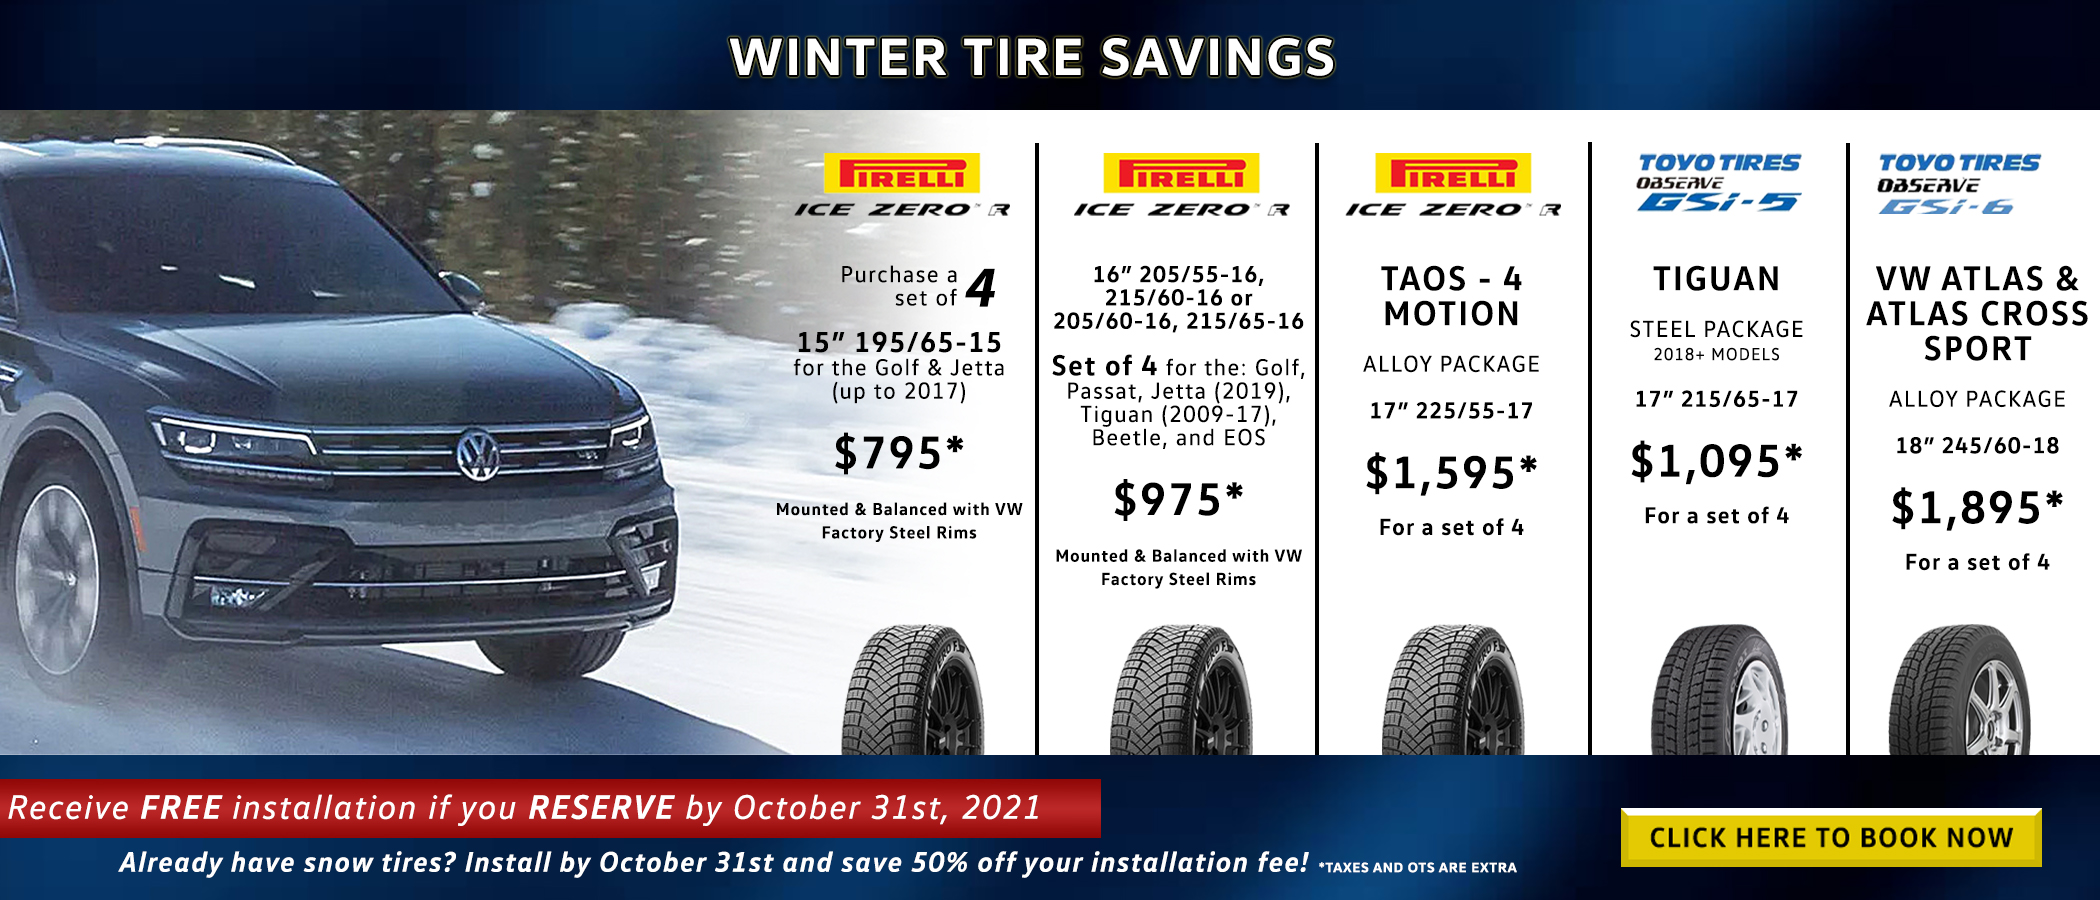 Winter tires on sale and tire installation discount at Hunt Club Volkswagen, Ottawa